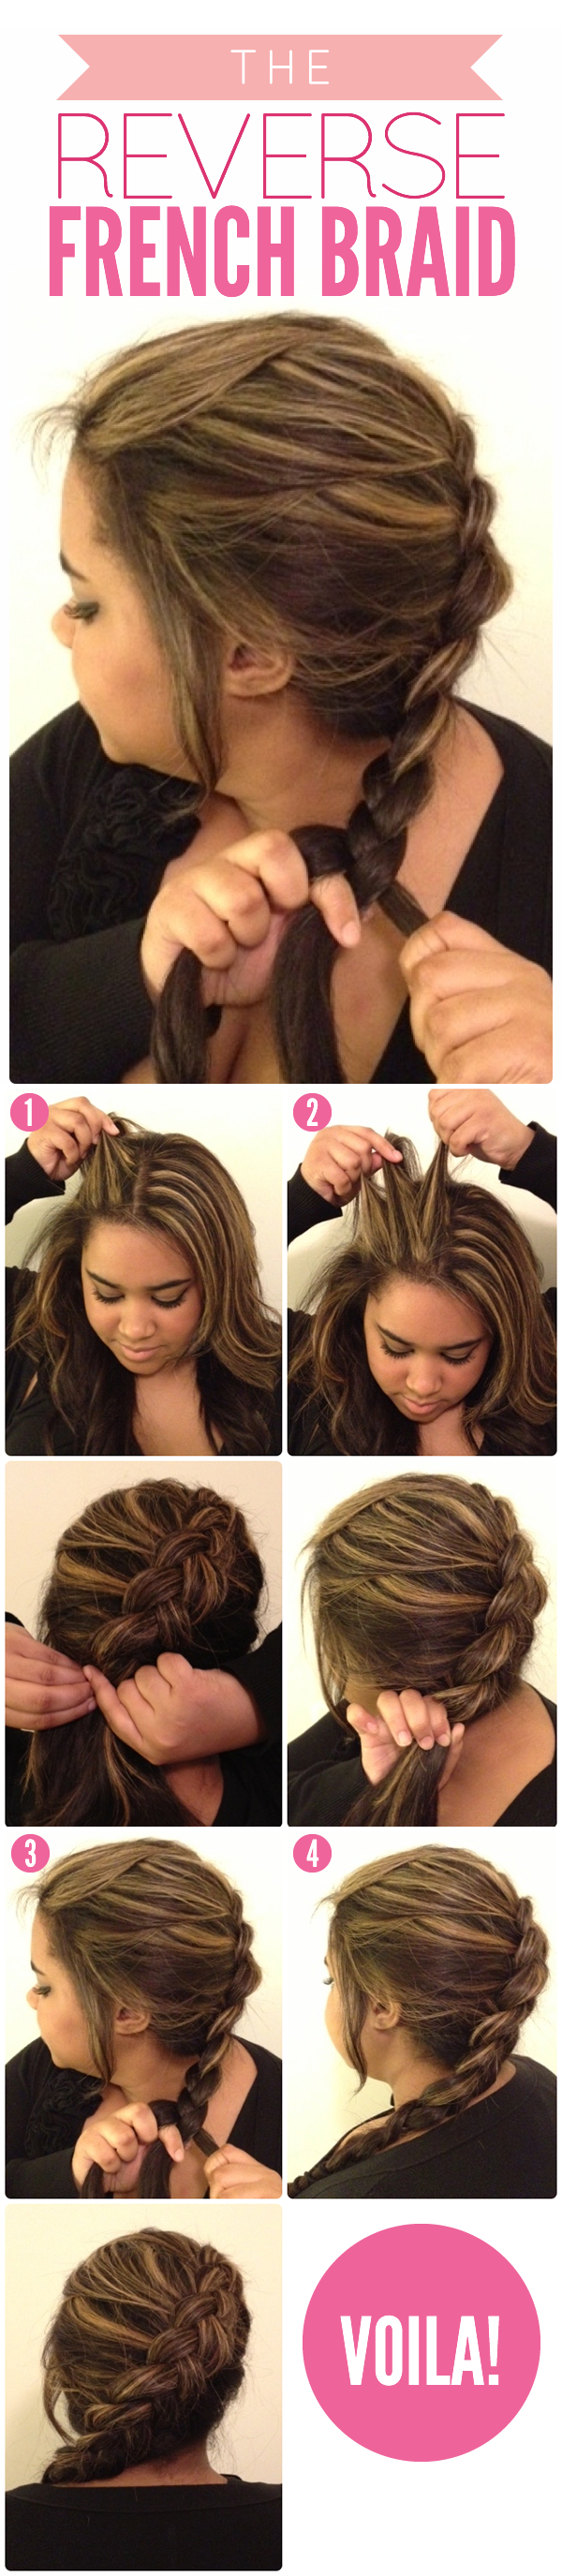 Fine How To Make A Easy French Braid Braids Hairstyle Inspiration Daily Dogsangcom